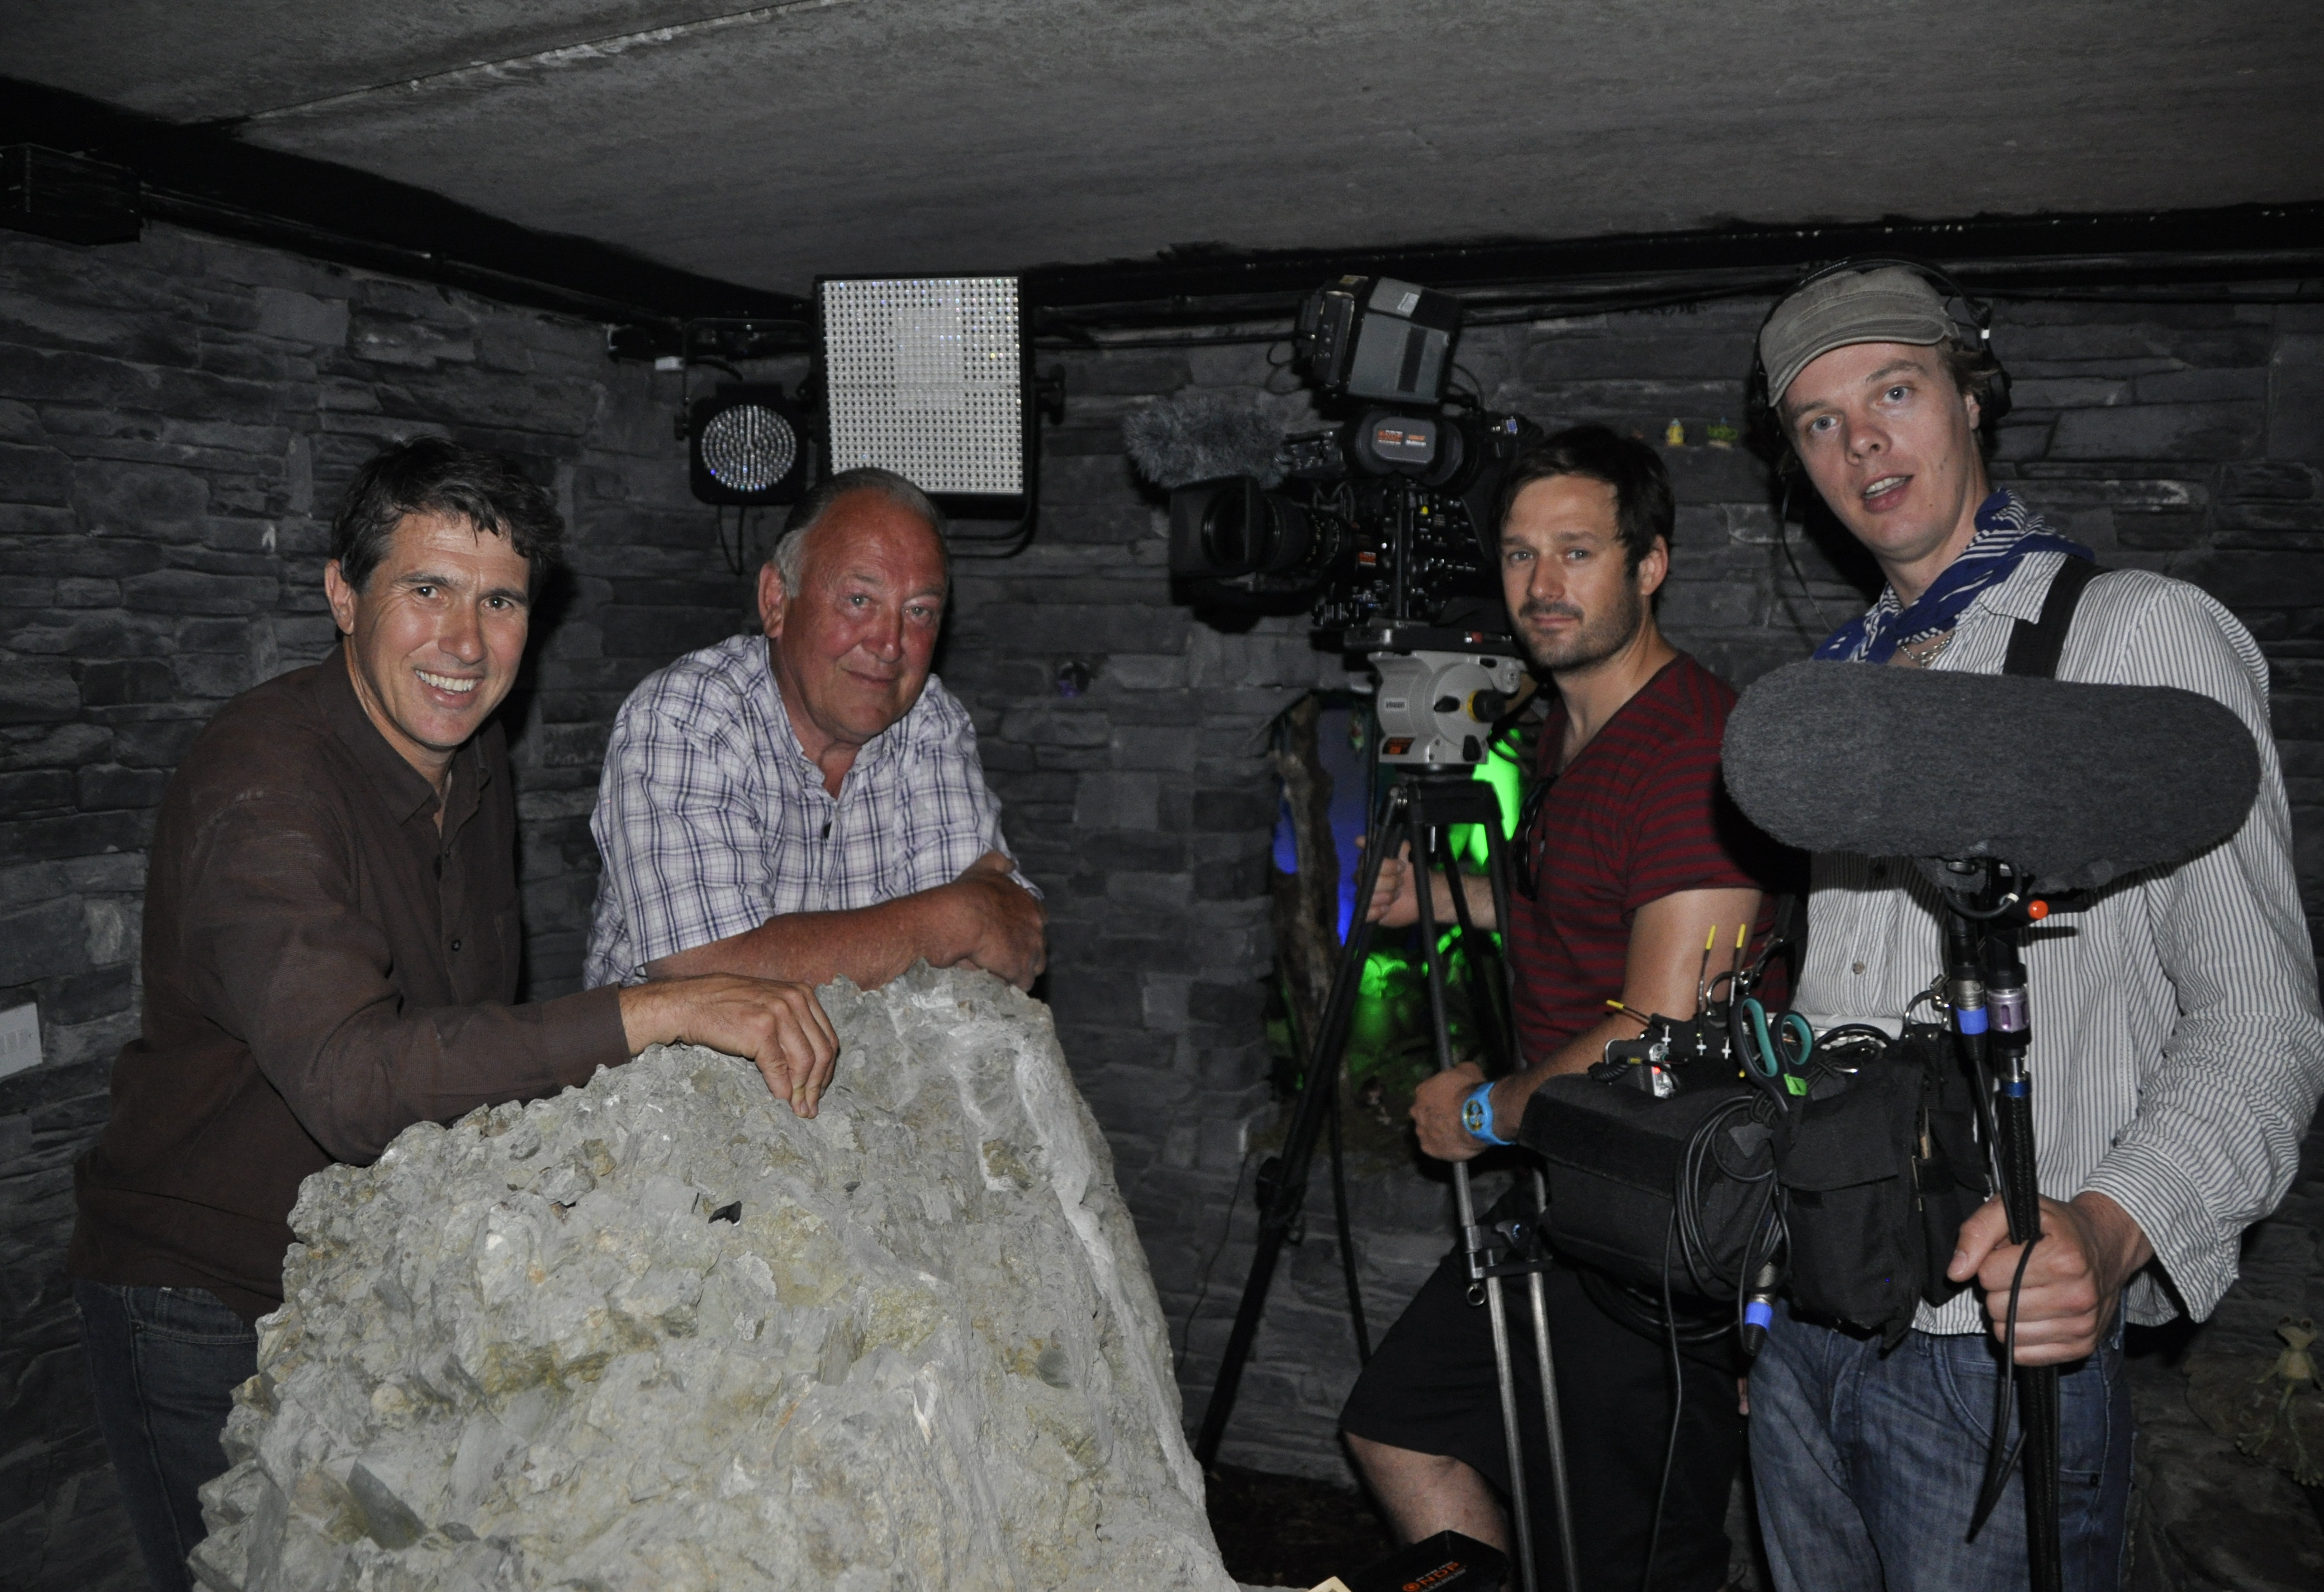 Things to do in County Louth, Ireland - Leprechaun and Fairy Cavern - Dutch TV crew below the earth - YourDaysOut - Photo 8